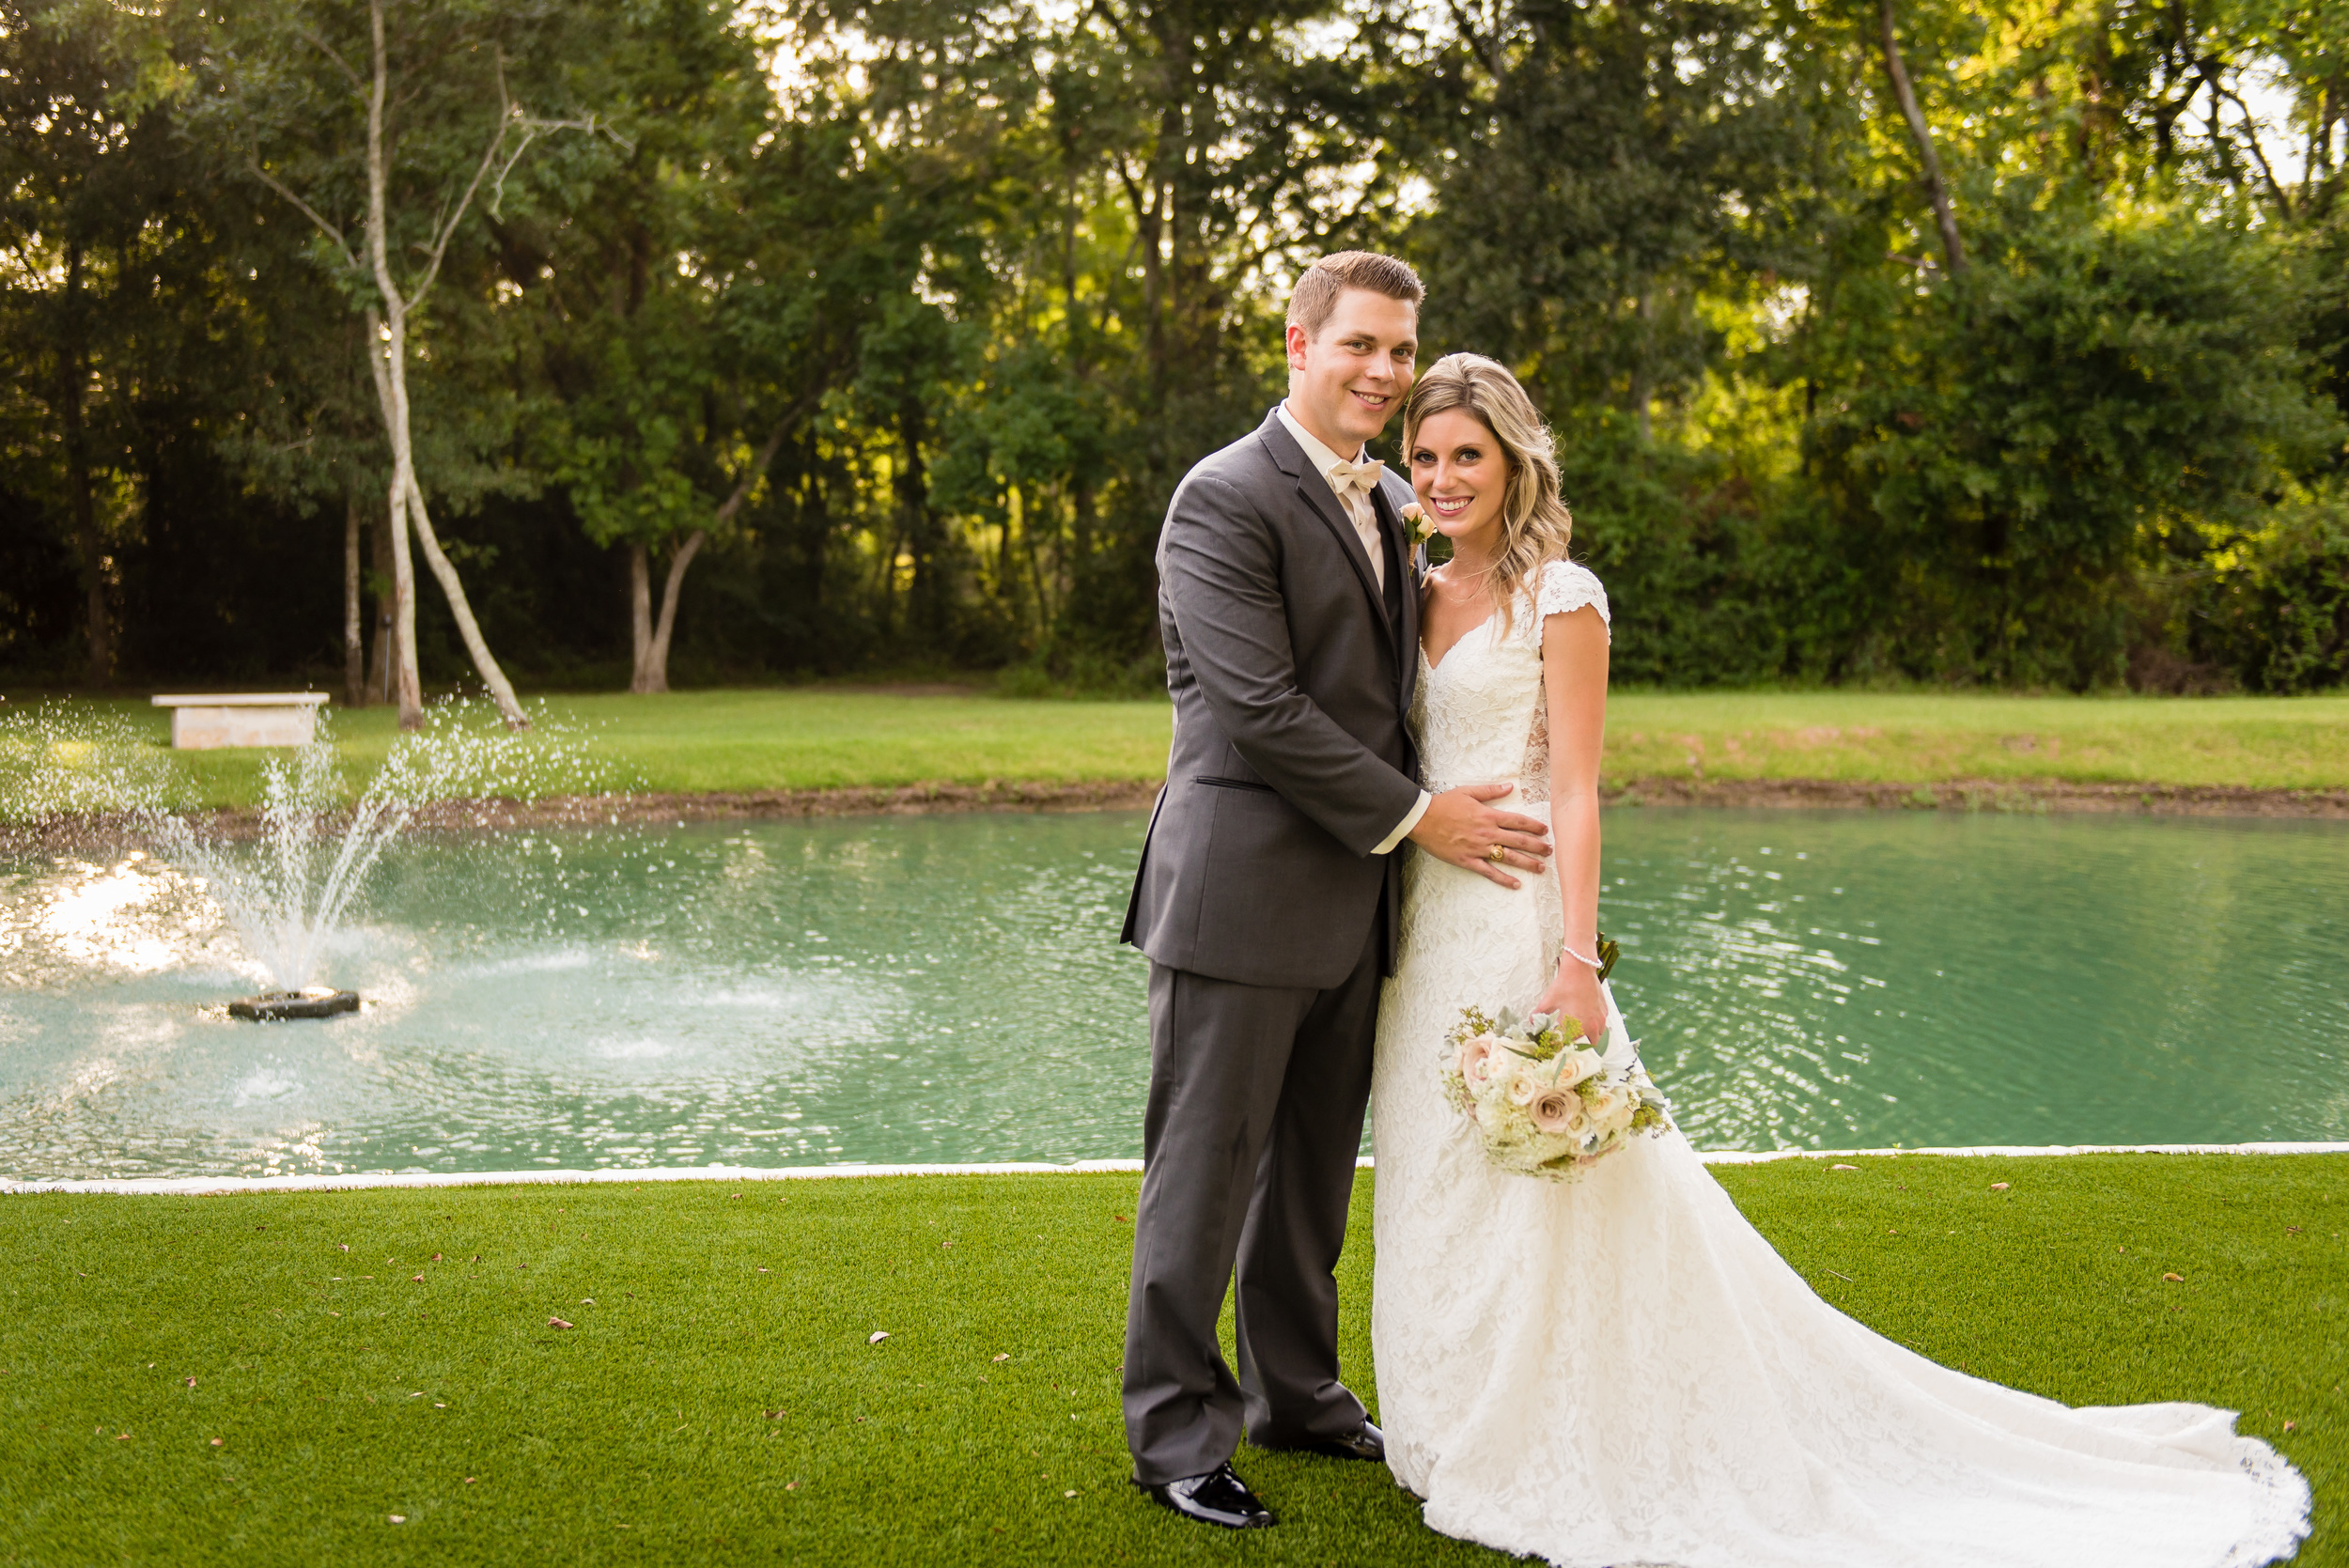 Plan Our Day Houston Wedding Planners | Pecan Springs Brookshire, TX | Classic Elegant Wedding